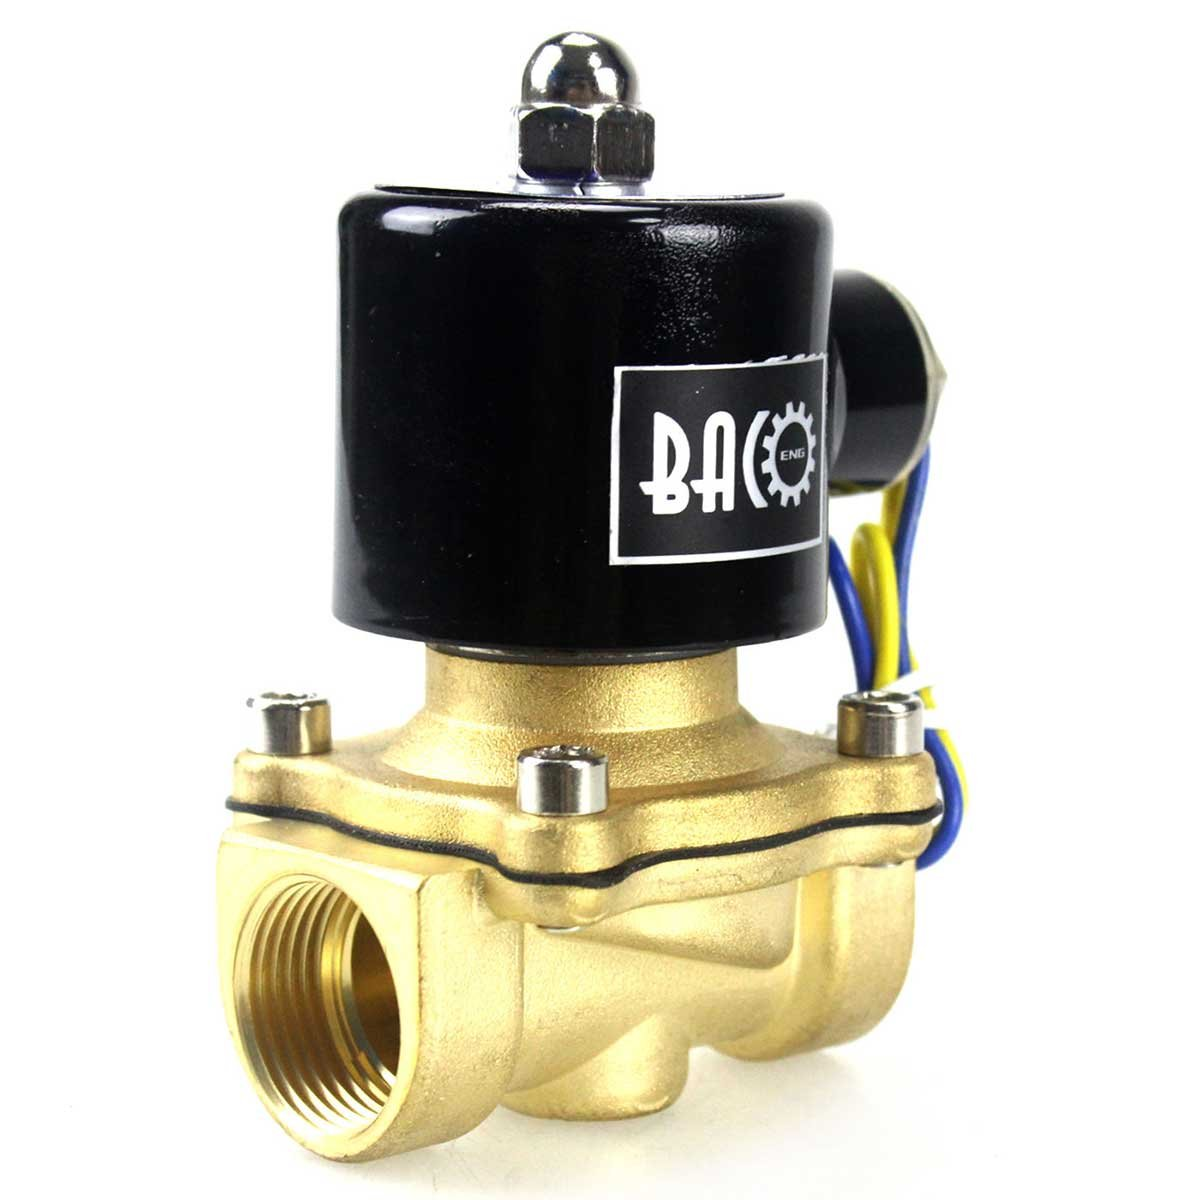 BACOENG 1' DC12V Electric Solenoid Valve (NPT, Brass, Normally Closed) Baco Engineering